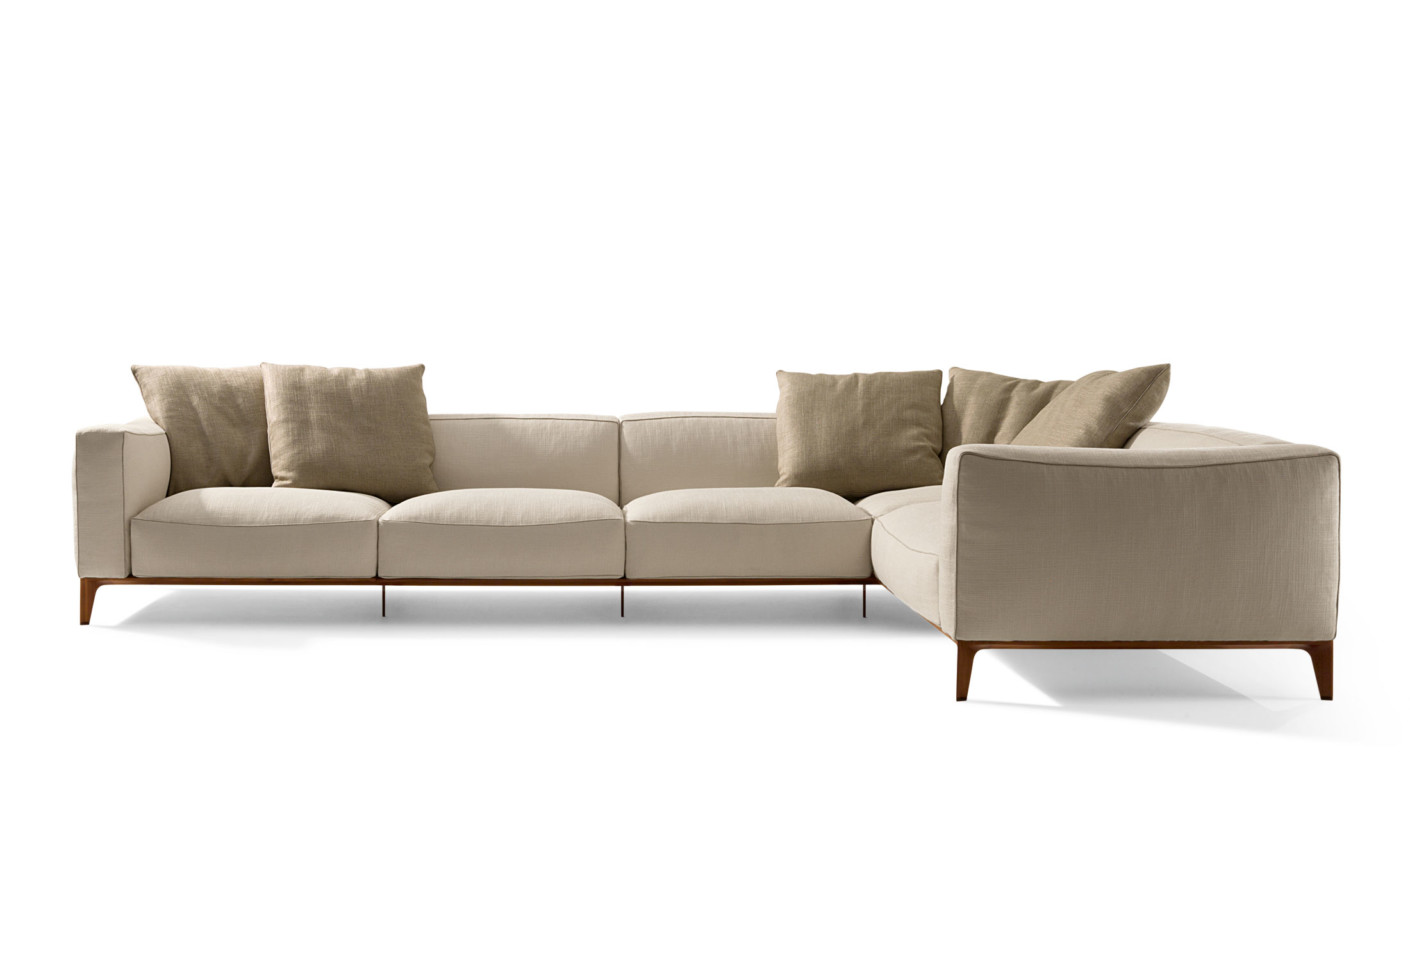 aton modular sofa by giorgetti stylepark. Black Bedroom Furniture Sets. Home Design Ideas